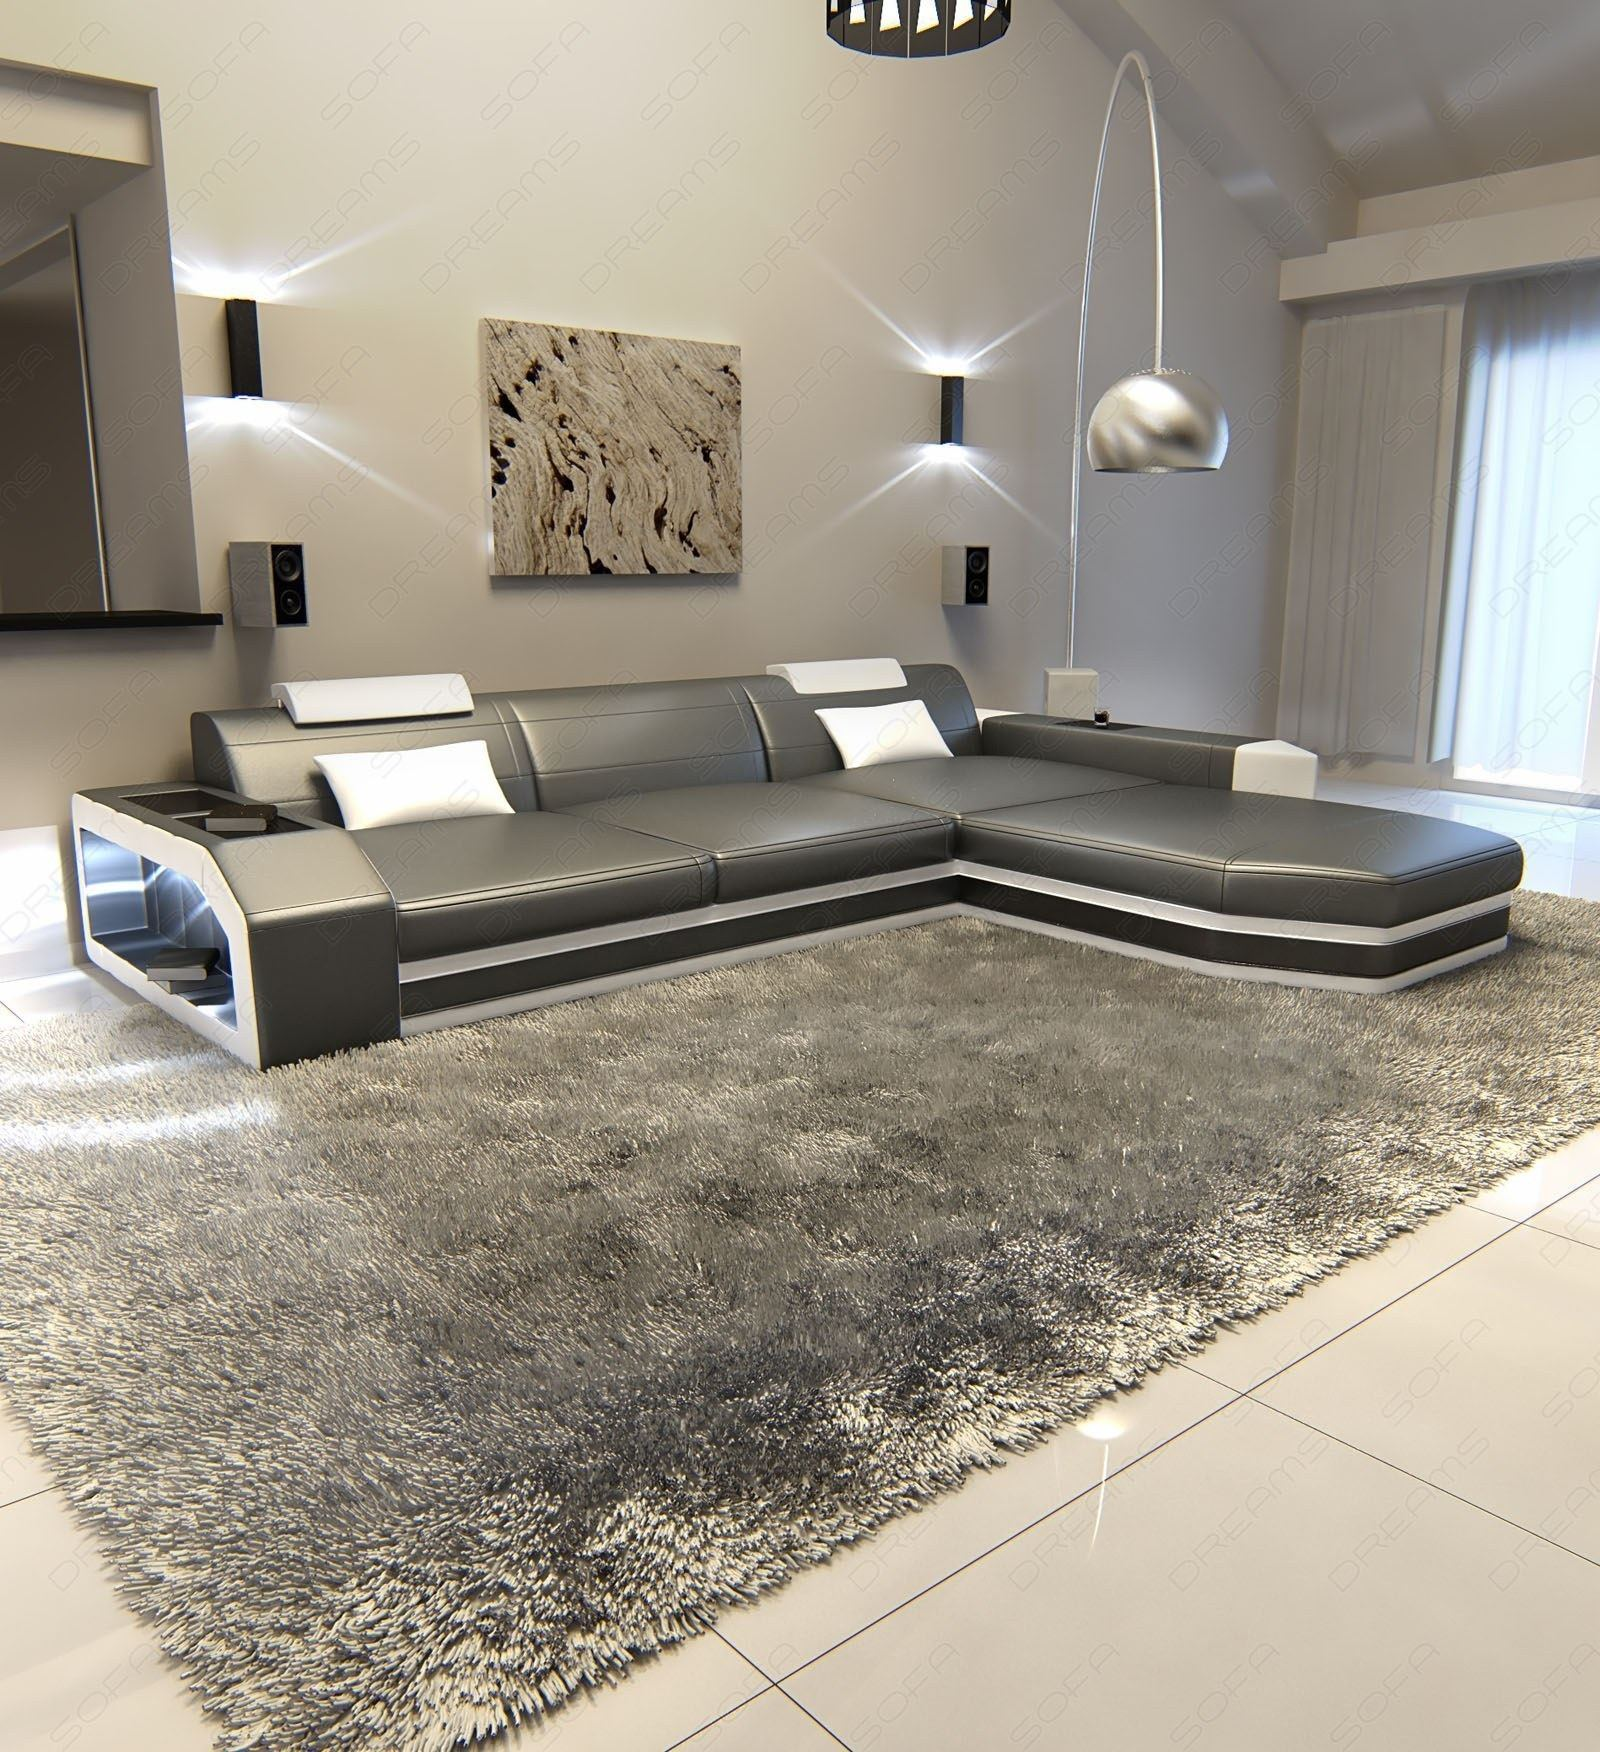 ledersofa ecksofa prato l form mit led eckcouch ledercouch grau weiss lagerware ebay. Black Bedroom Furniture Sets. Home Design Ideas